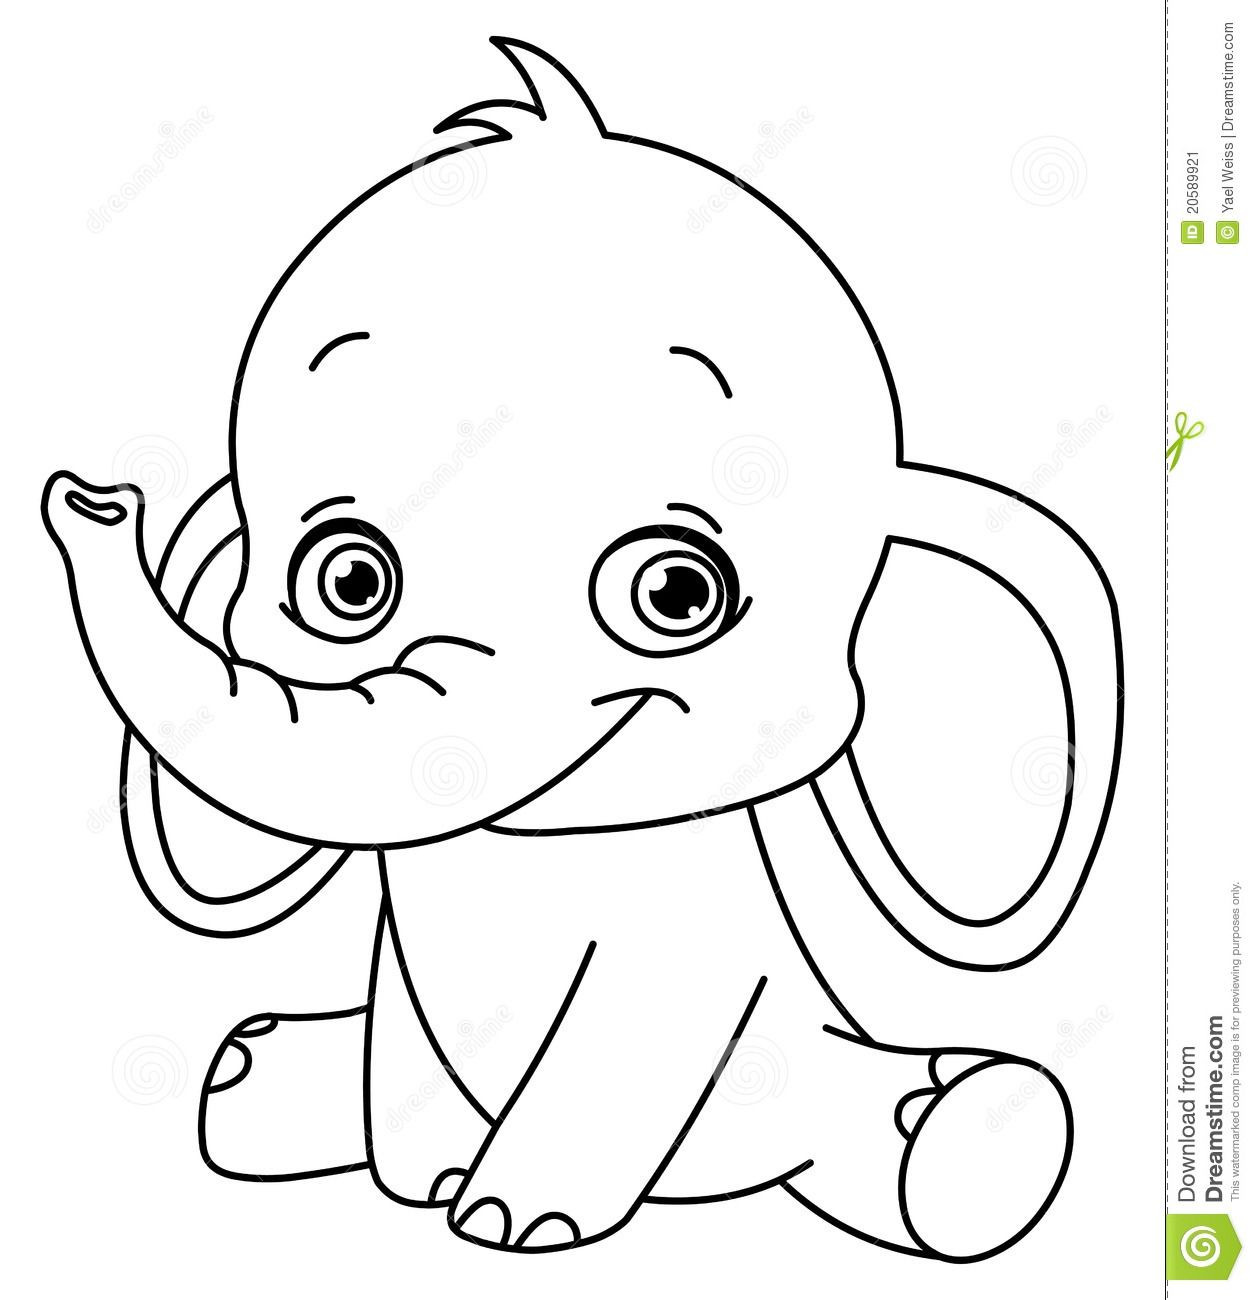 1255x1300 Free Printable Elephant Coloring Pages For Kids Pleasing Elephants